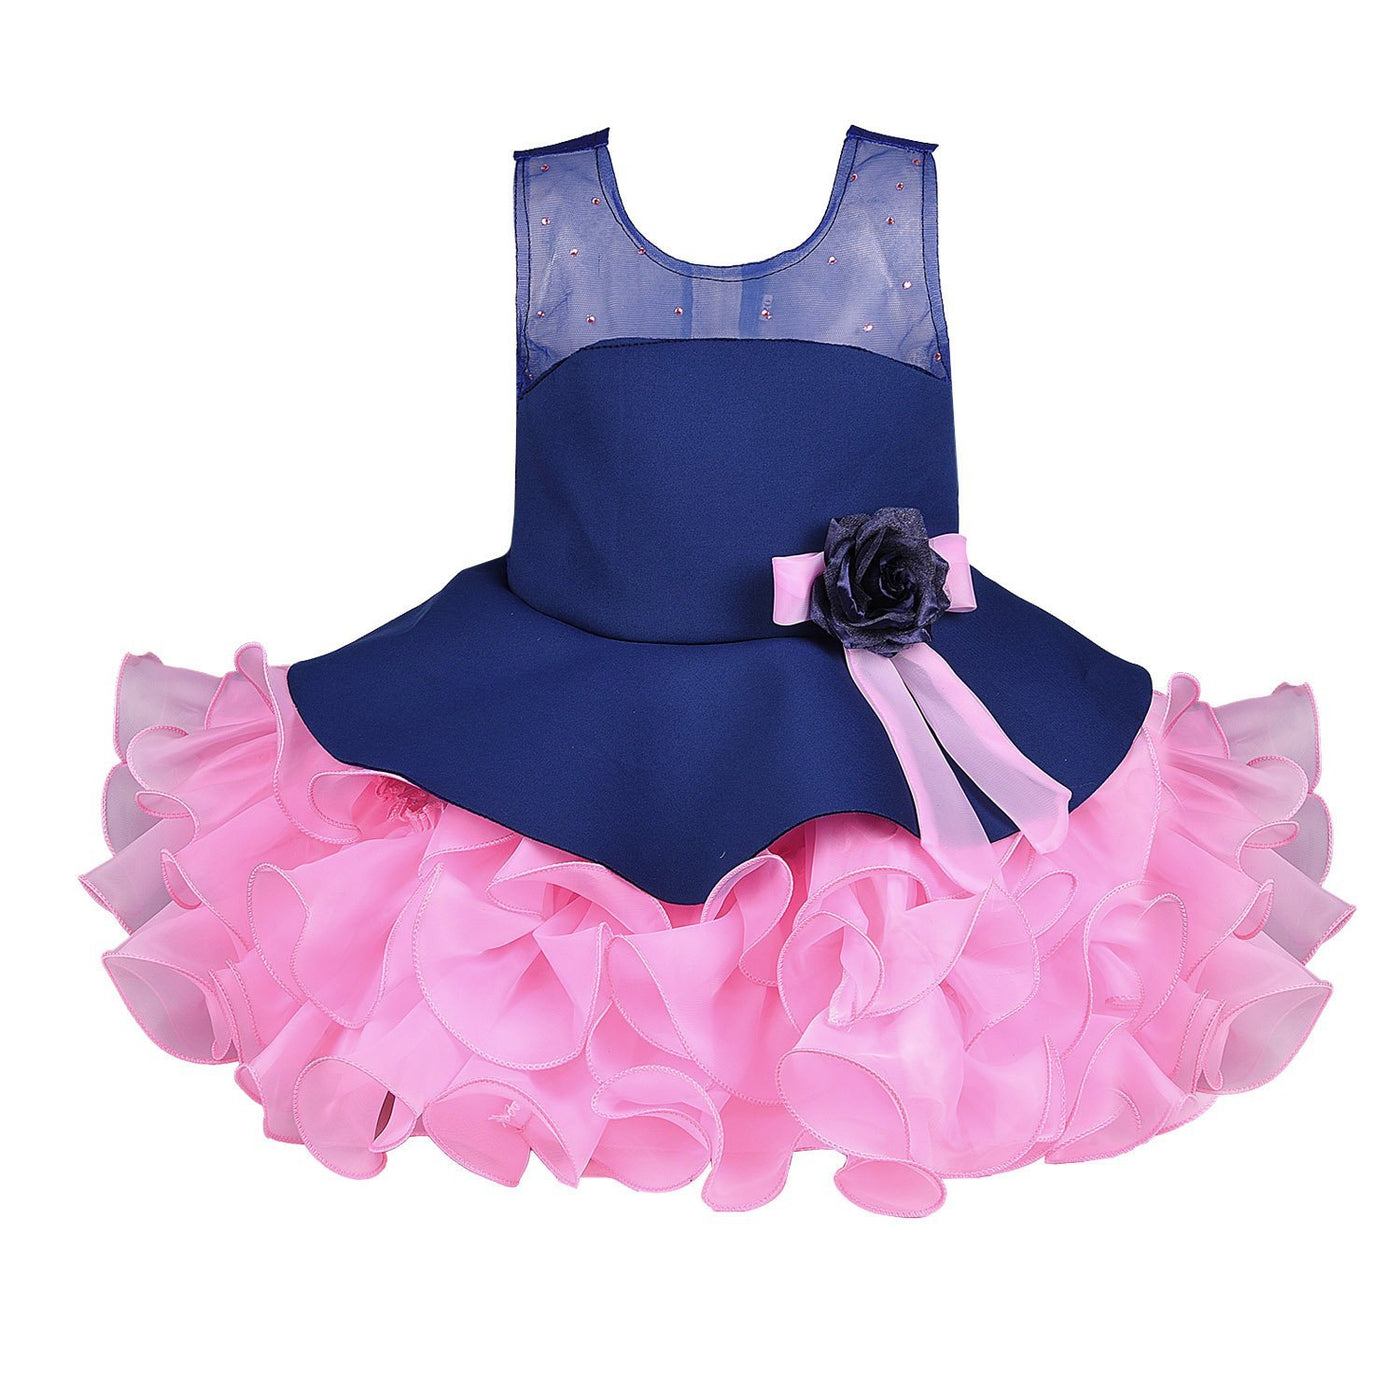 e8e14c957acd Baby Girls Party Wear Frock Dress Bxa158nb - Wish Karo Dresses ...